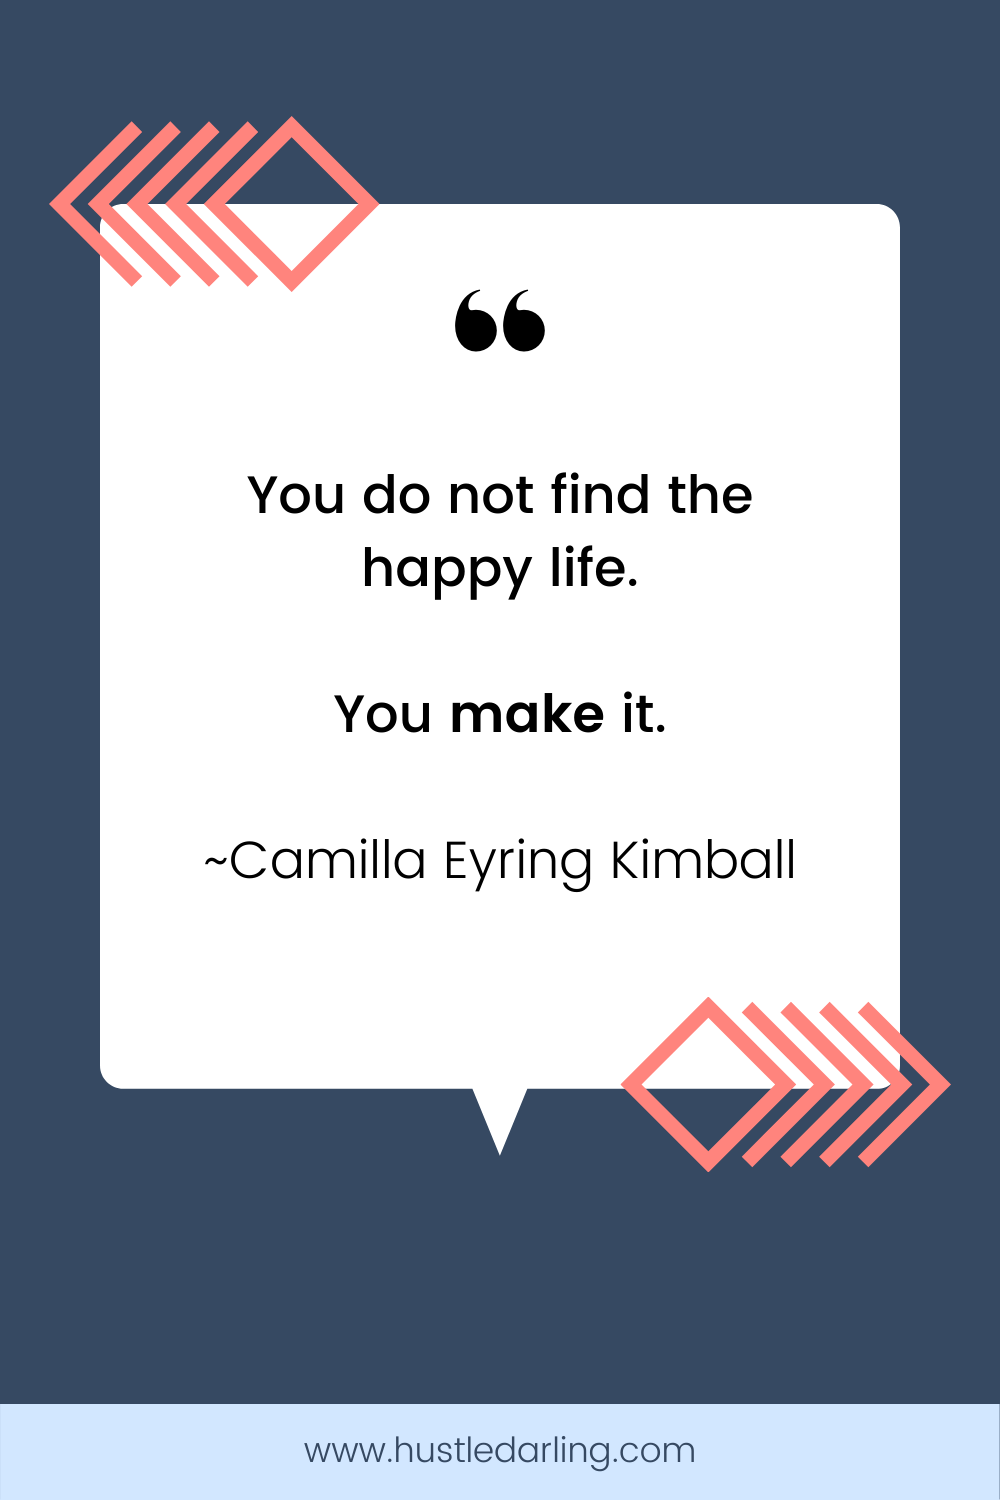 """Pink arrows and a diamond are in the top left corner and the bottom right corner of the image. On a dark blue background is a white speech bubble with a large quotation mark at the top. Text underneath reads """"You do not find the happy life. You make it. ~ Camilla Eyring Kimball"""""""